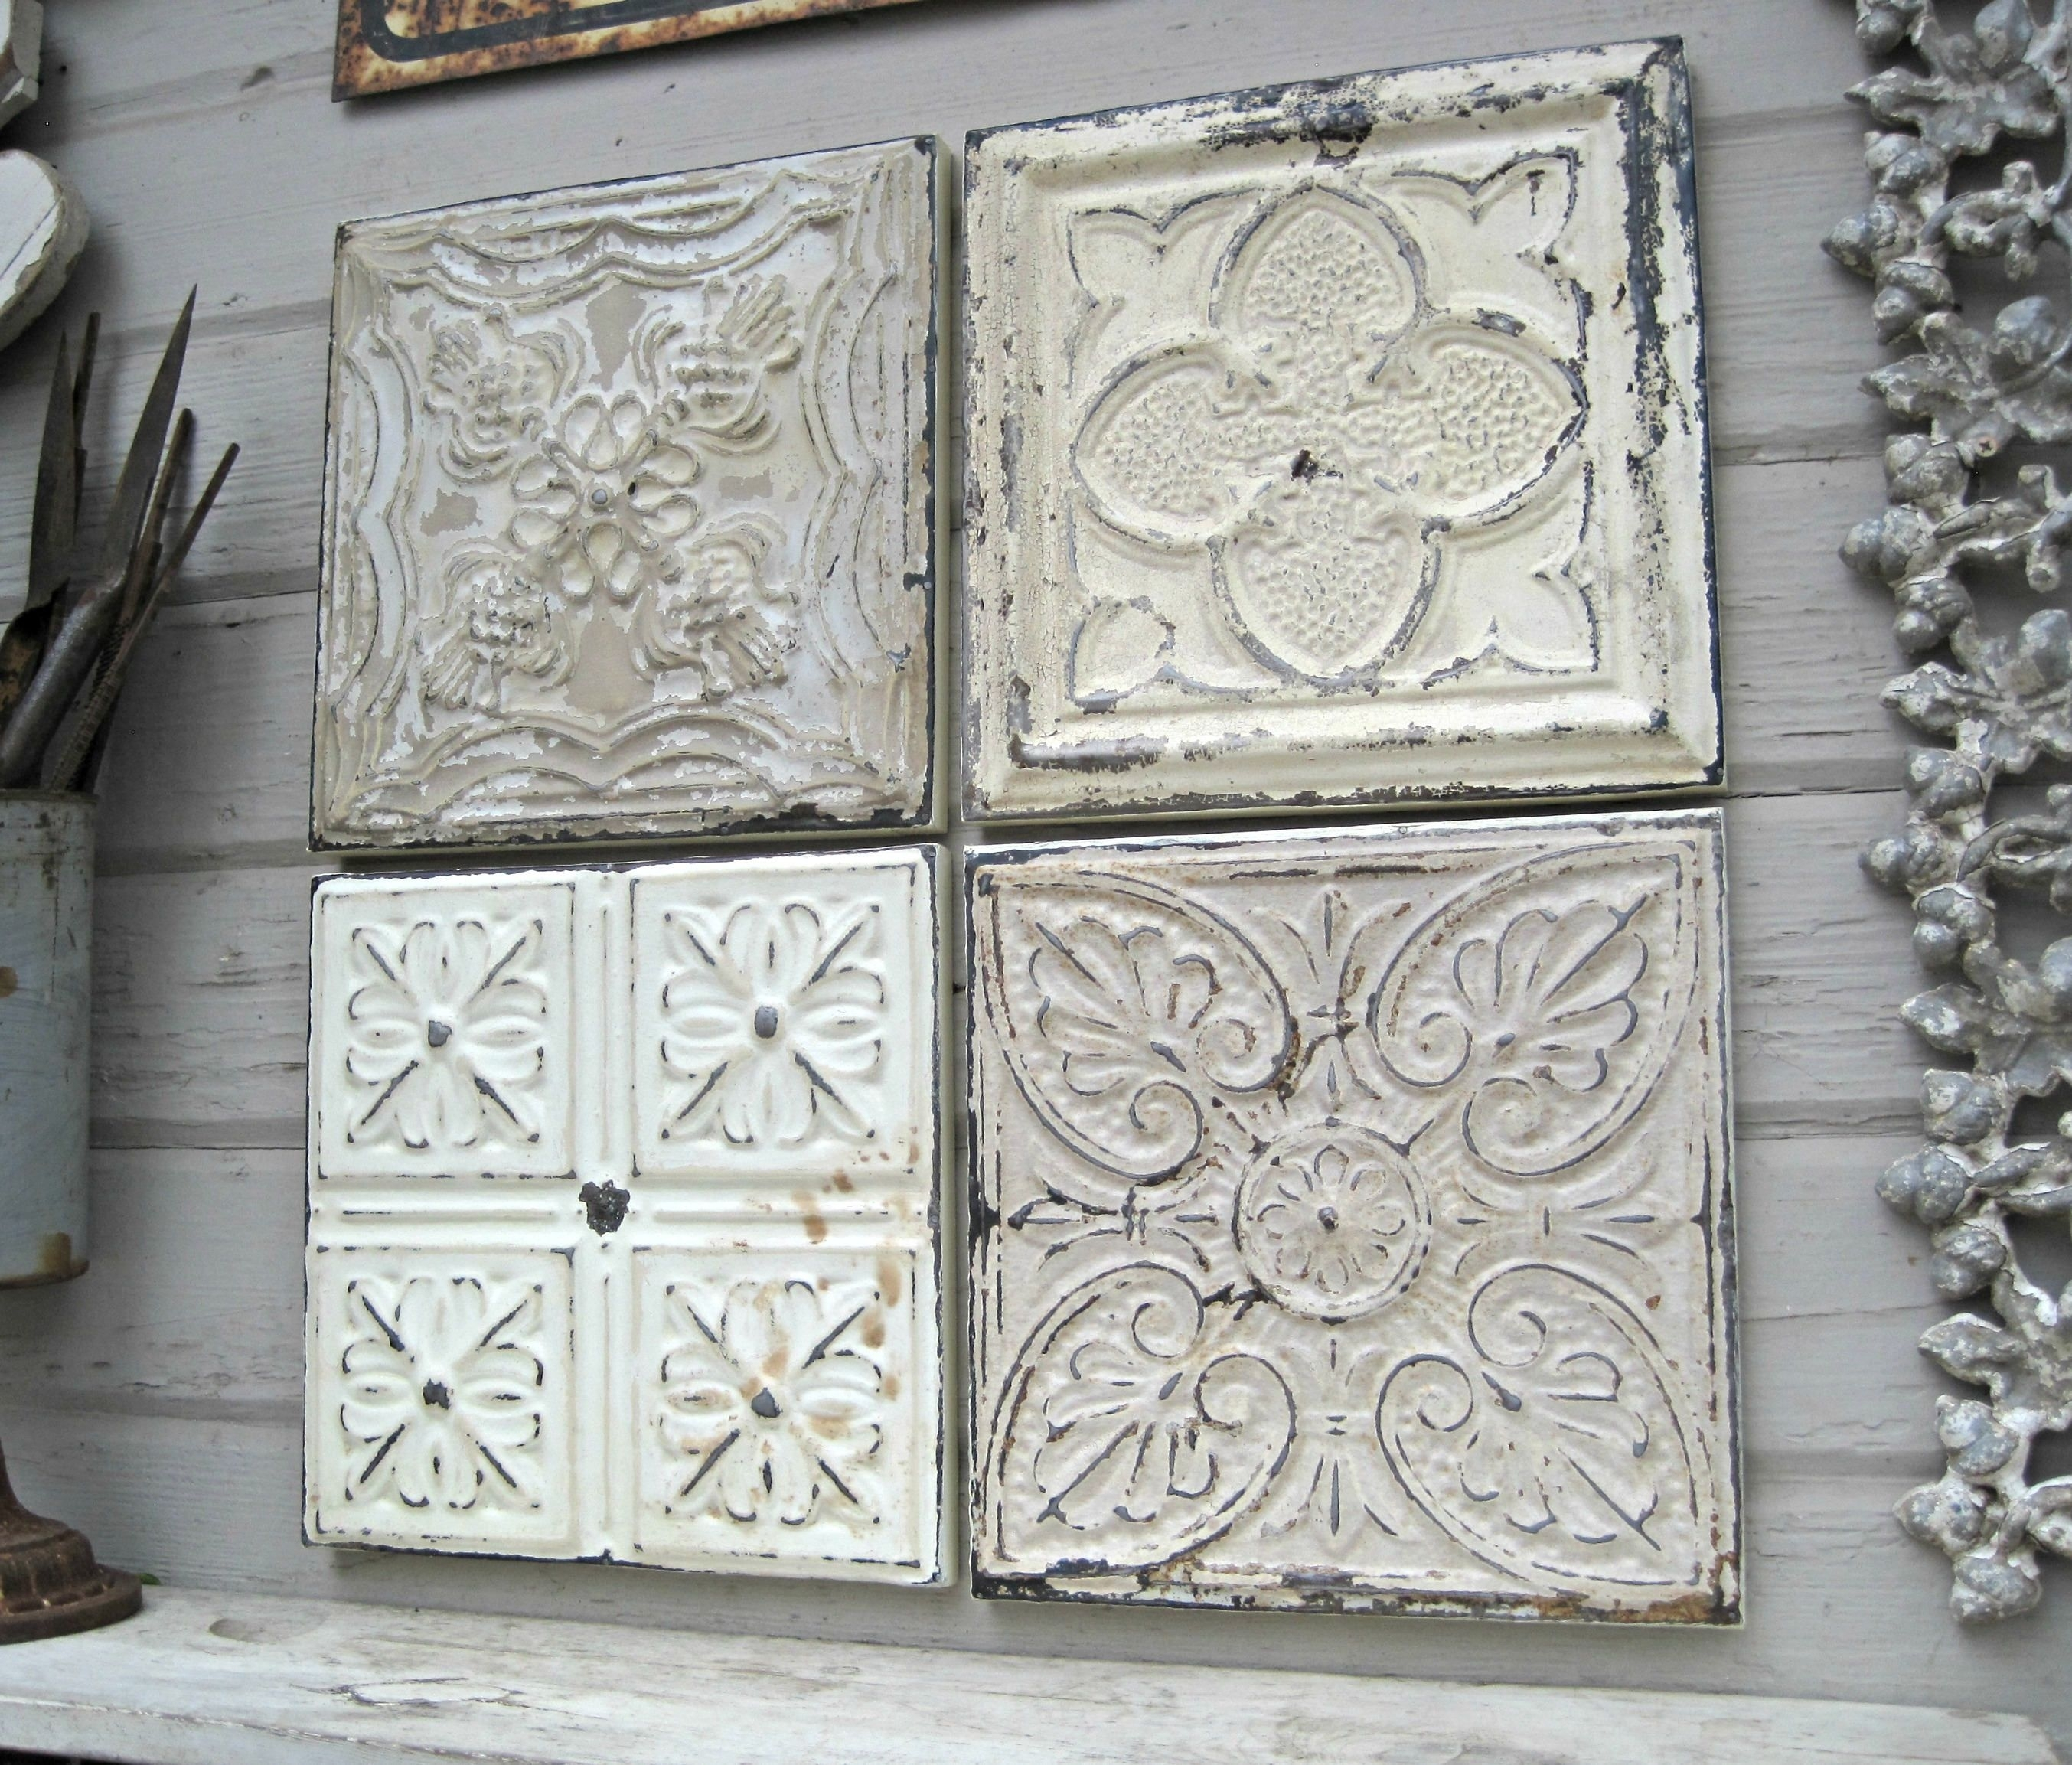 Trendy Idea Architectural Wall Decor Or Decoration And Libson In Most Current Architectural Wall Accents (View 14 of 15)